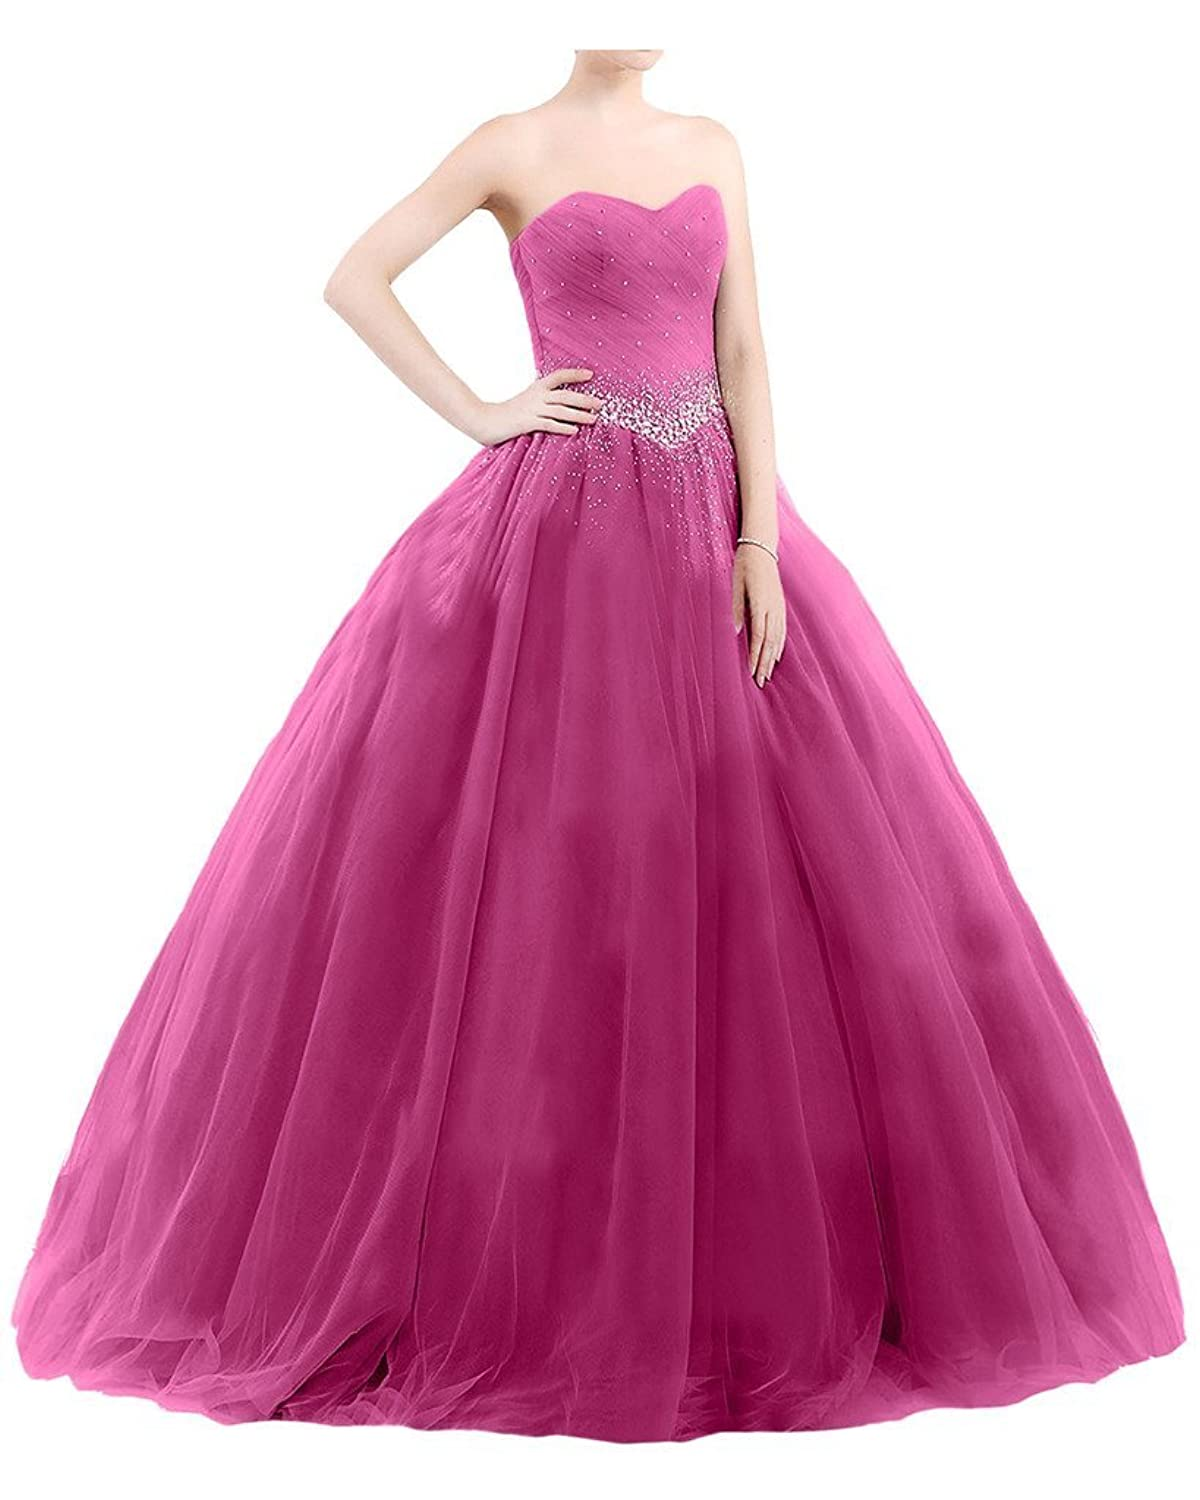 Promworld Women's Sweetheart Tulle Quinceanera Dress Ball Gown